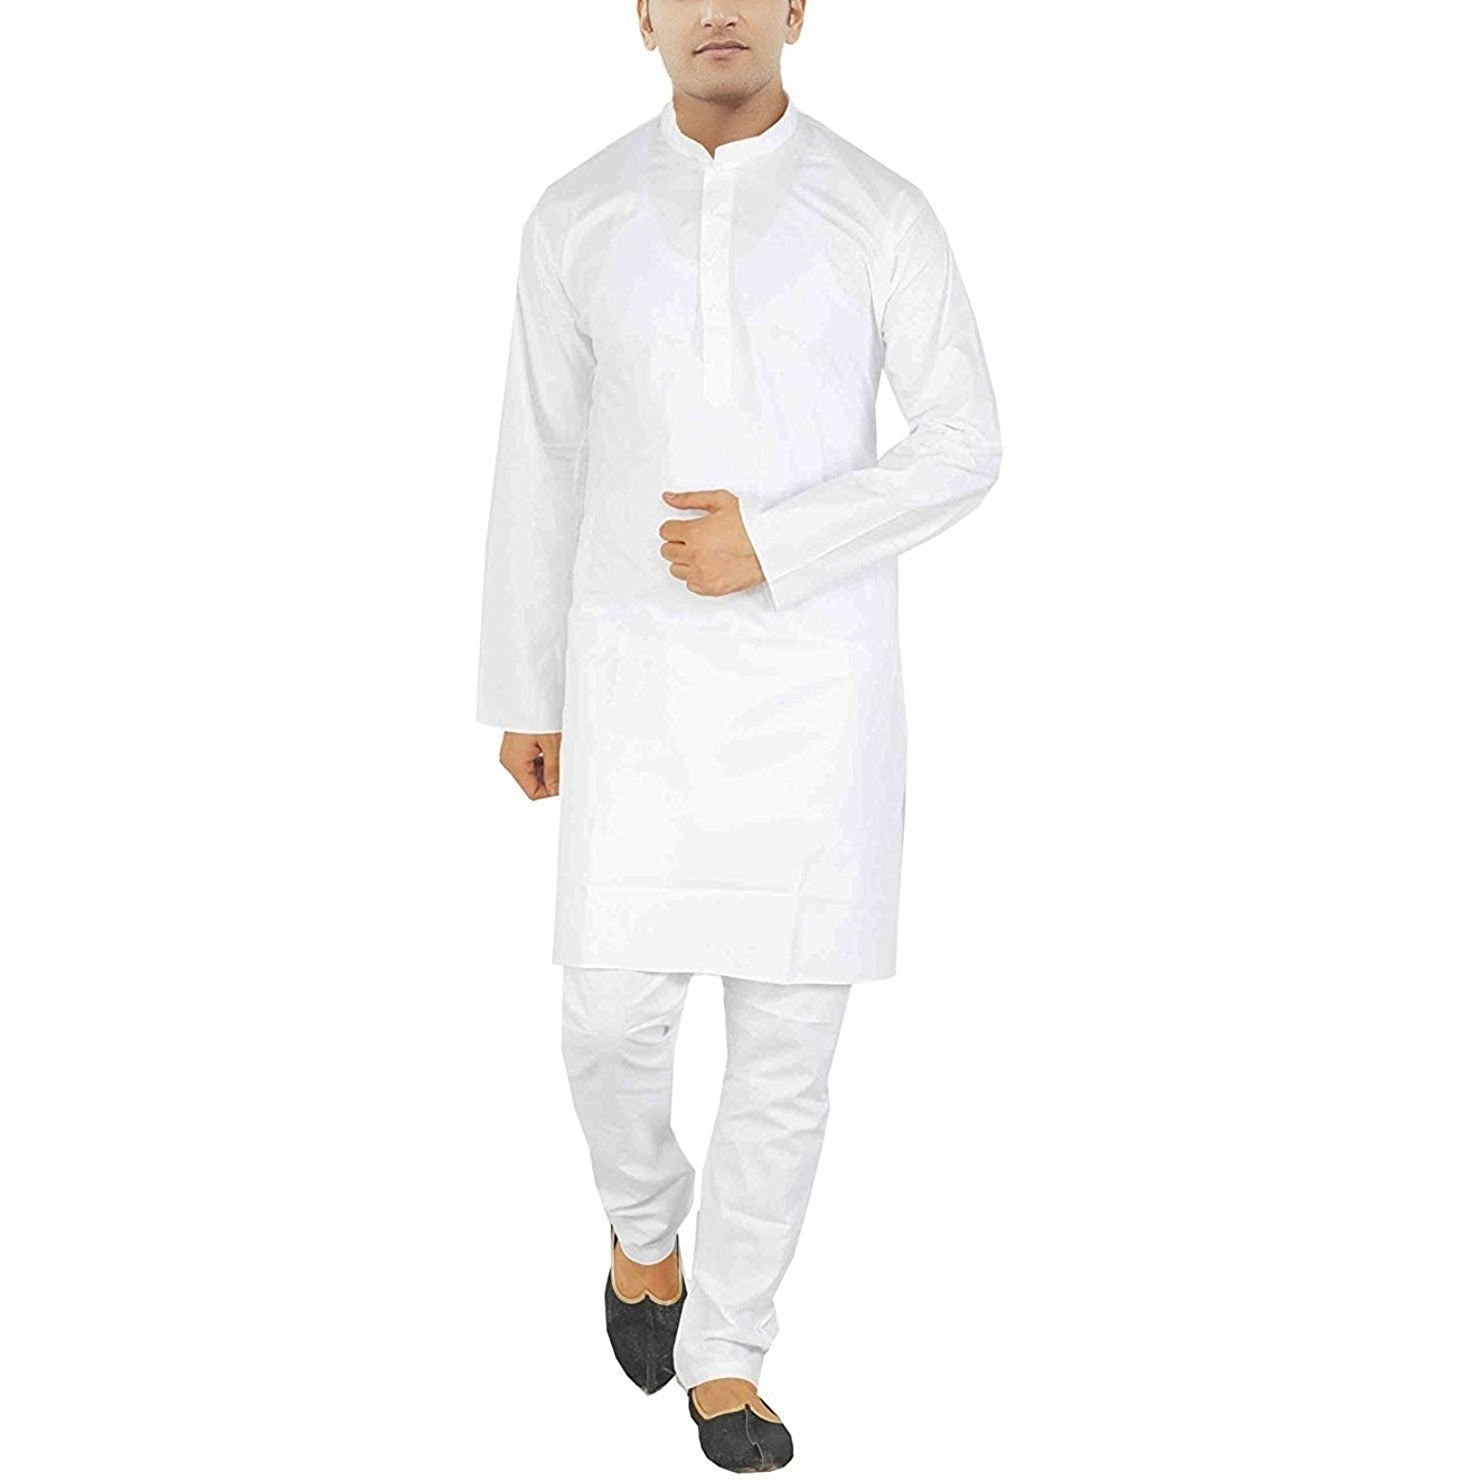 White Cotton Kurta Pajama For Men Yoga Indian Clothing